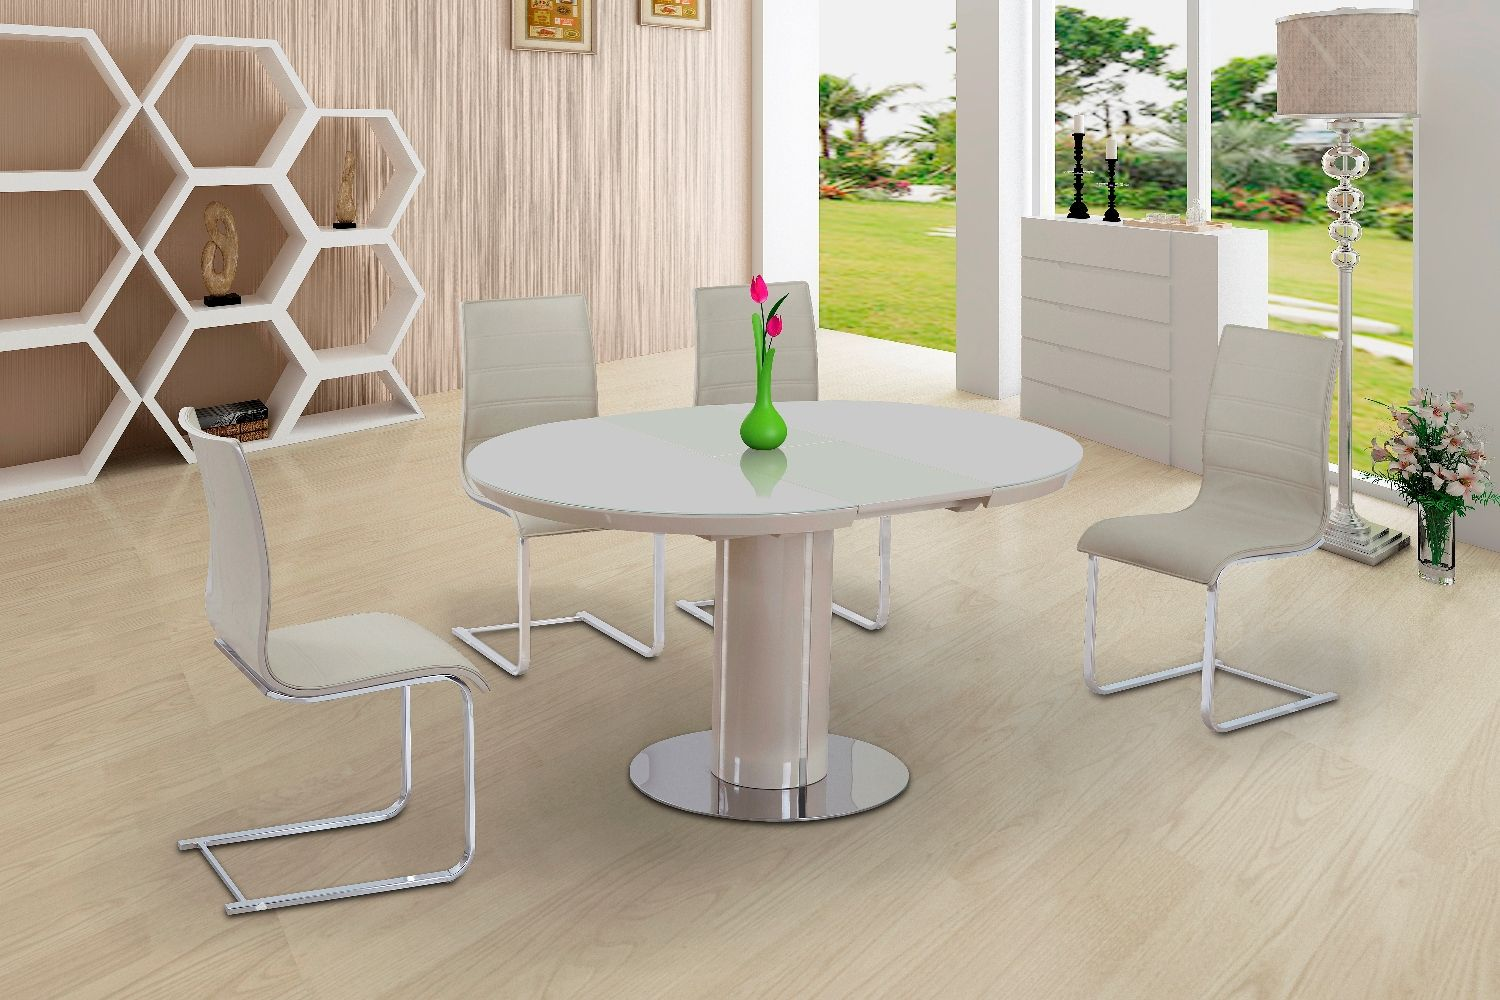 Harveys Round Glass Dining Table And ChairsFull Size Of  : eclipse round oval gloss glass extending 110 to 145 cm dining table cream 11774 p from algarveglobal.com size 1500 x 1000 jpeg 215kB